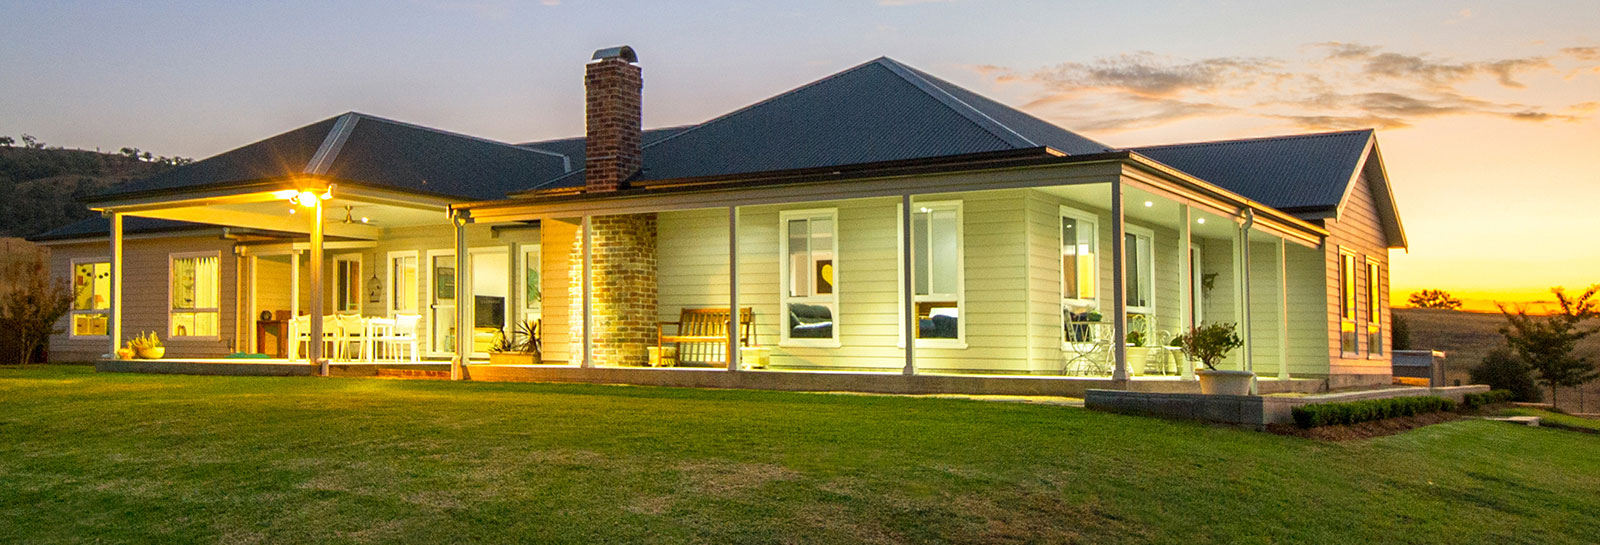 Home Designs Nsw Prices